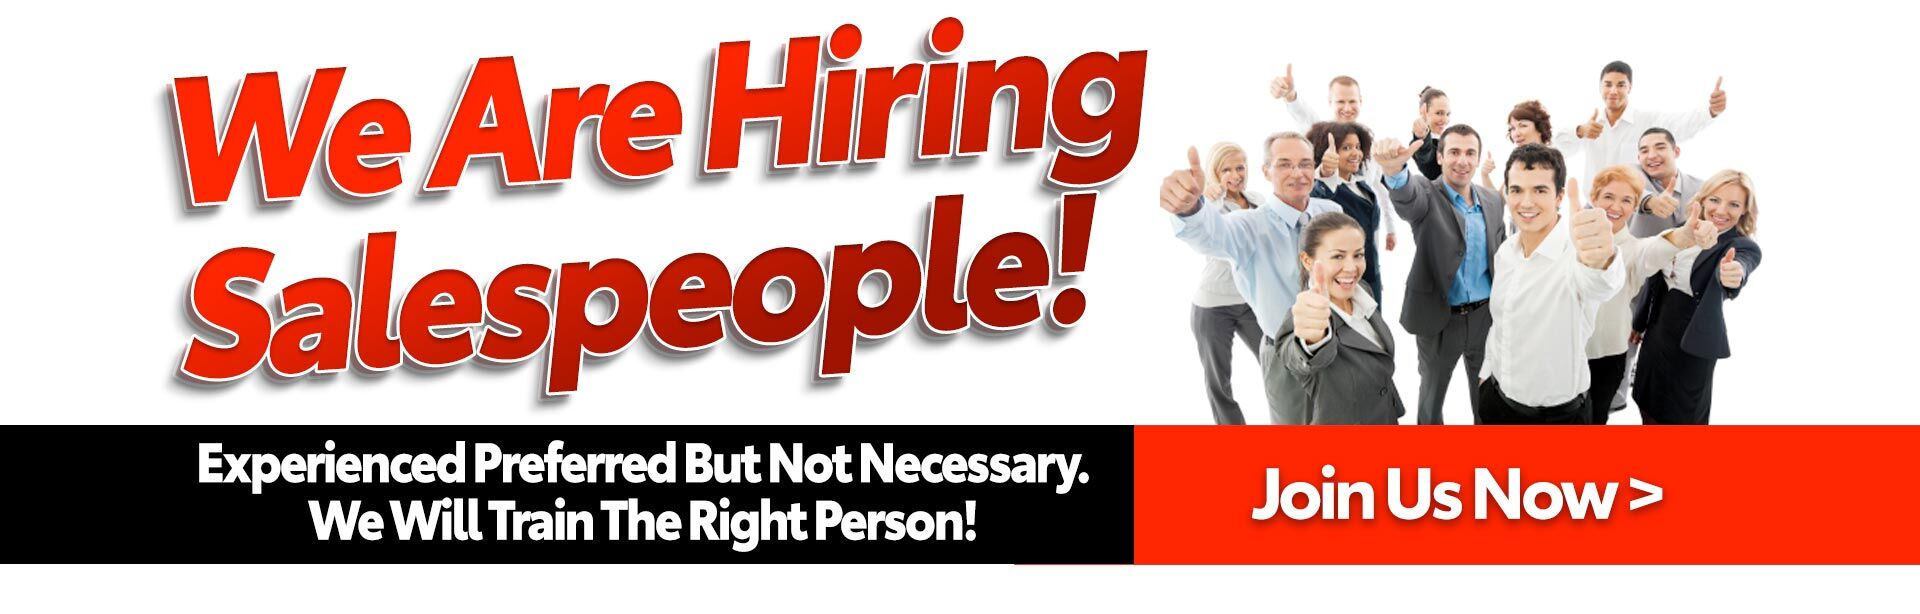 We Are Hiring Salespeople!